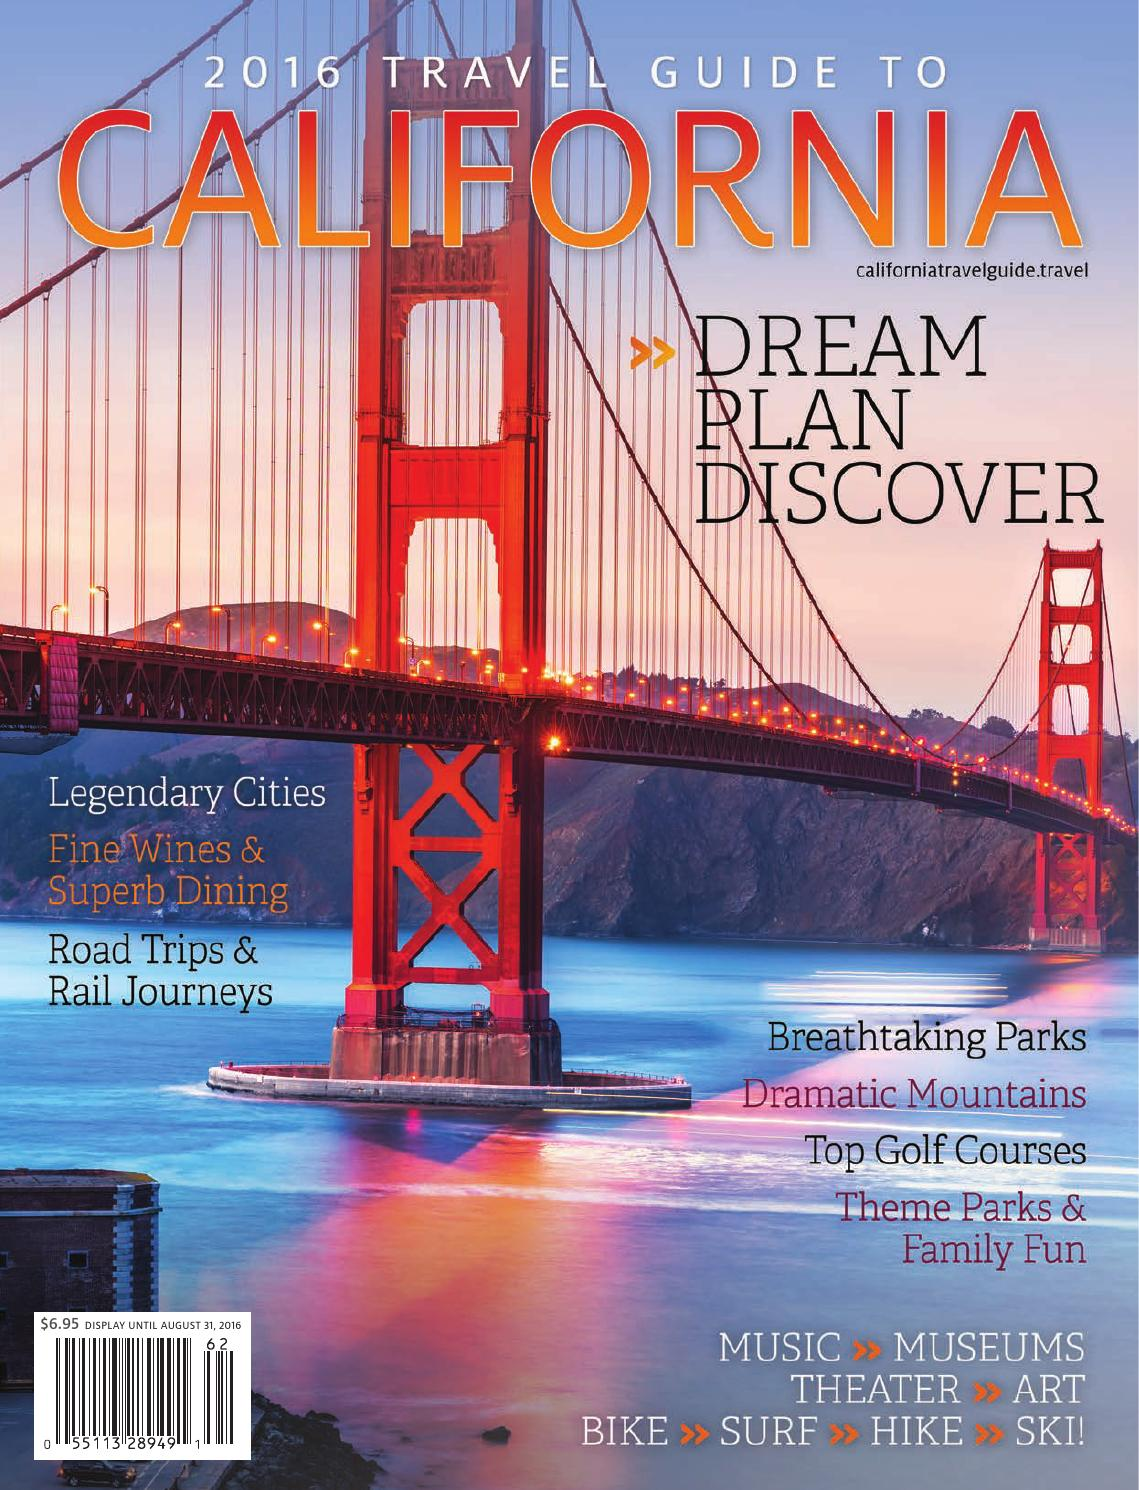 2016 Travel Guide to California by MarkintoshDesign - issuu 64283f33e